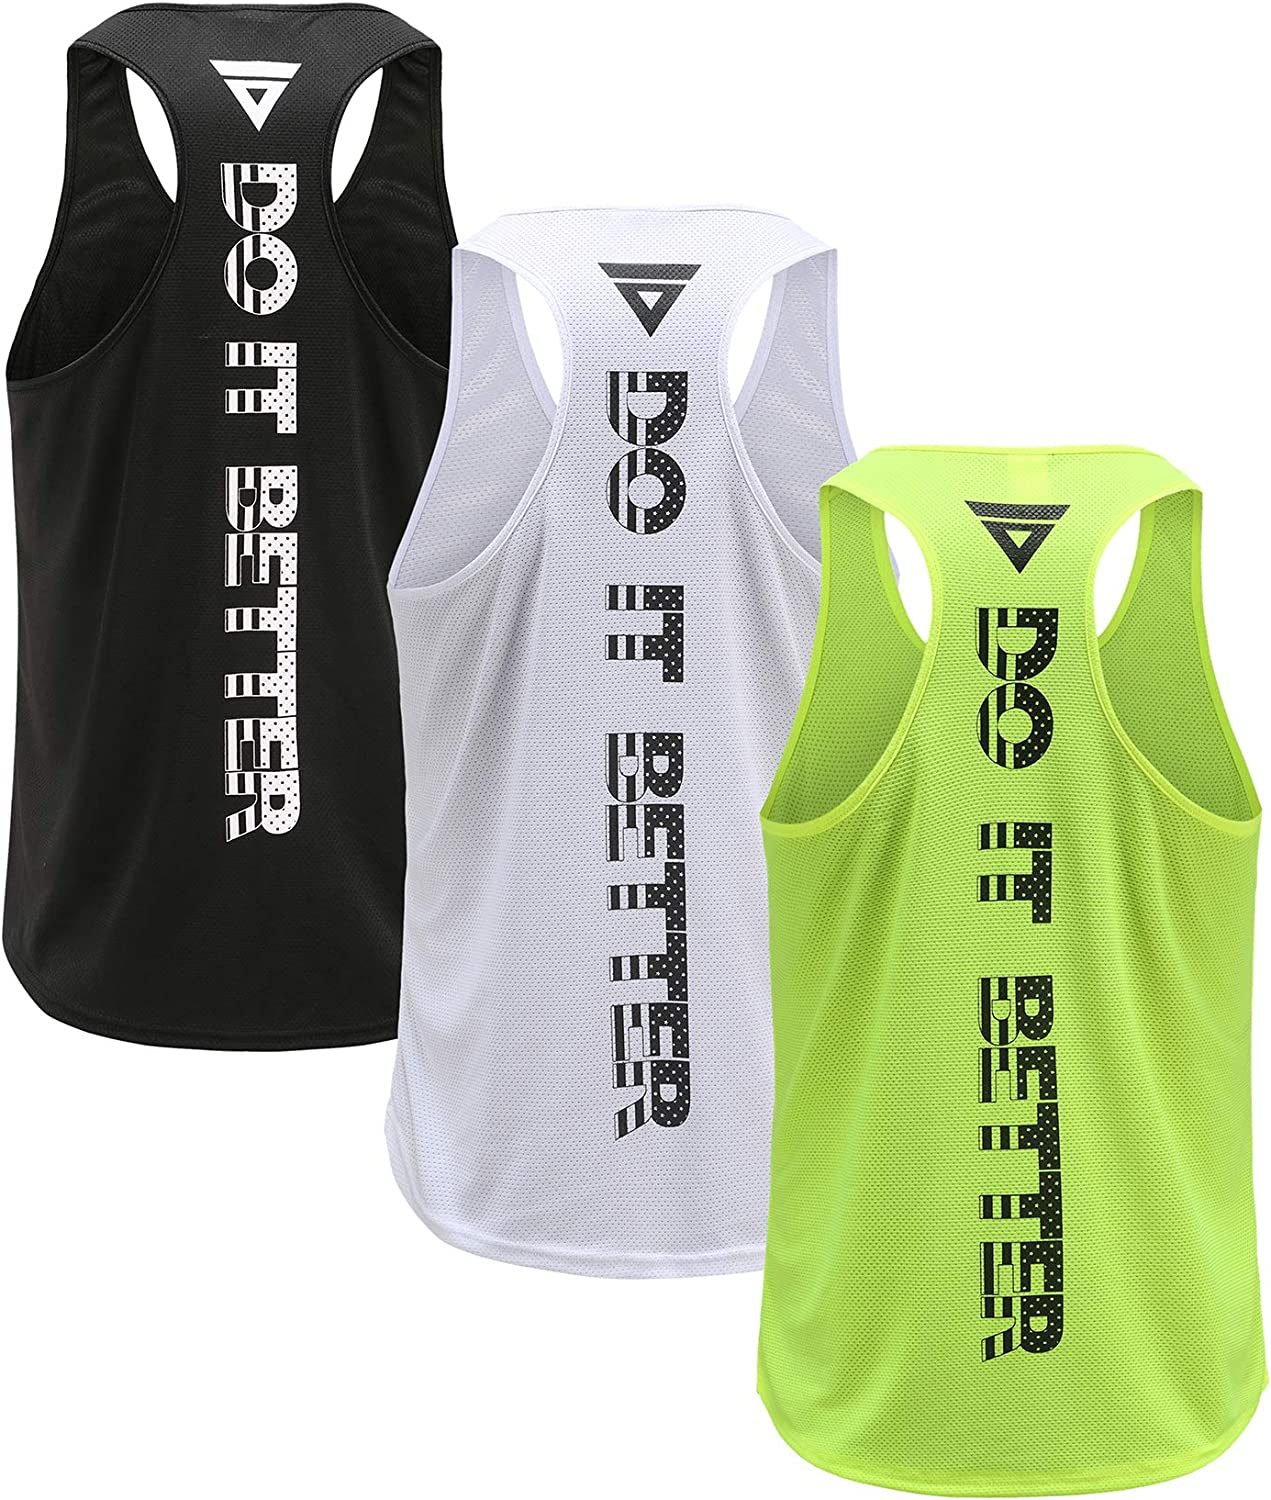 Men's 3 Pack Dry Fit Y-Back Gym Muscle Tank Mesh Sleeveless Top Fitness Training Cool Dry Athletic Workout